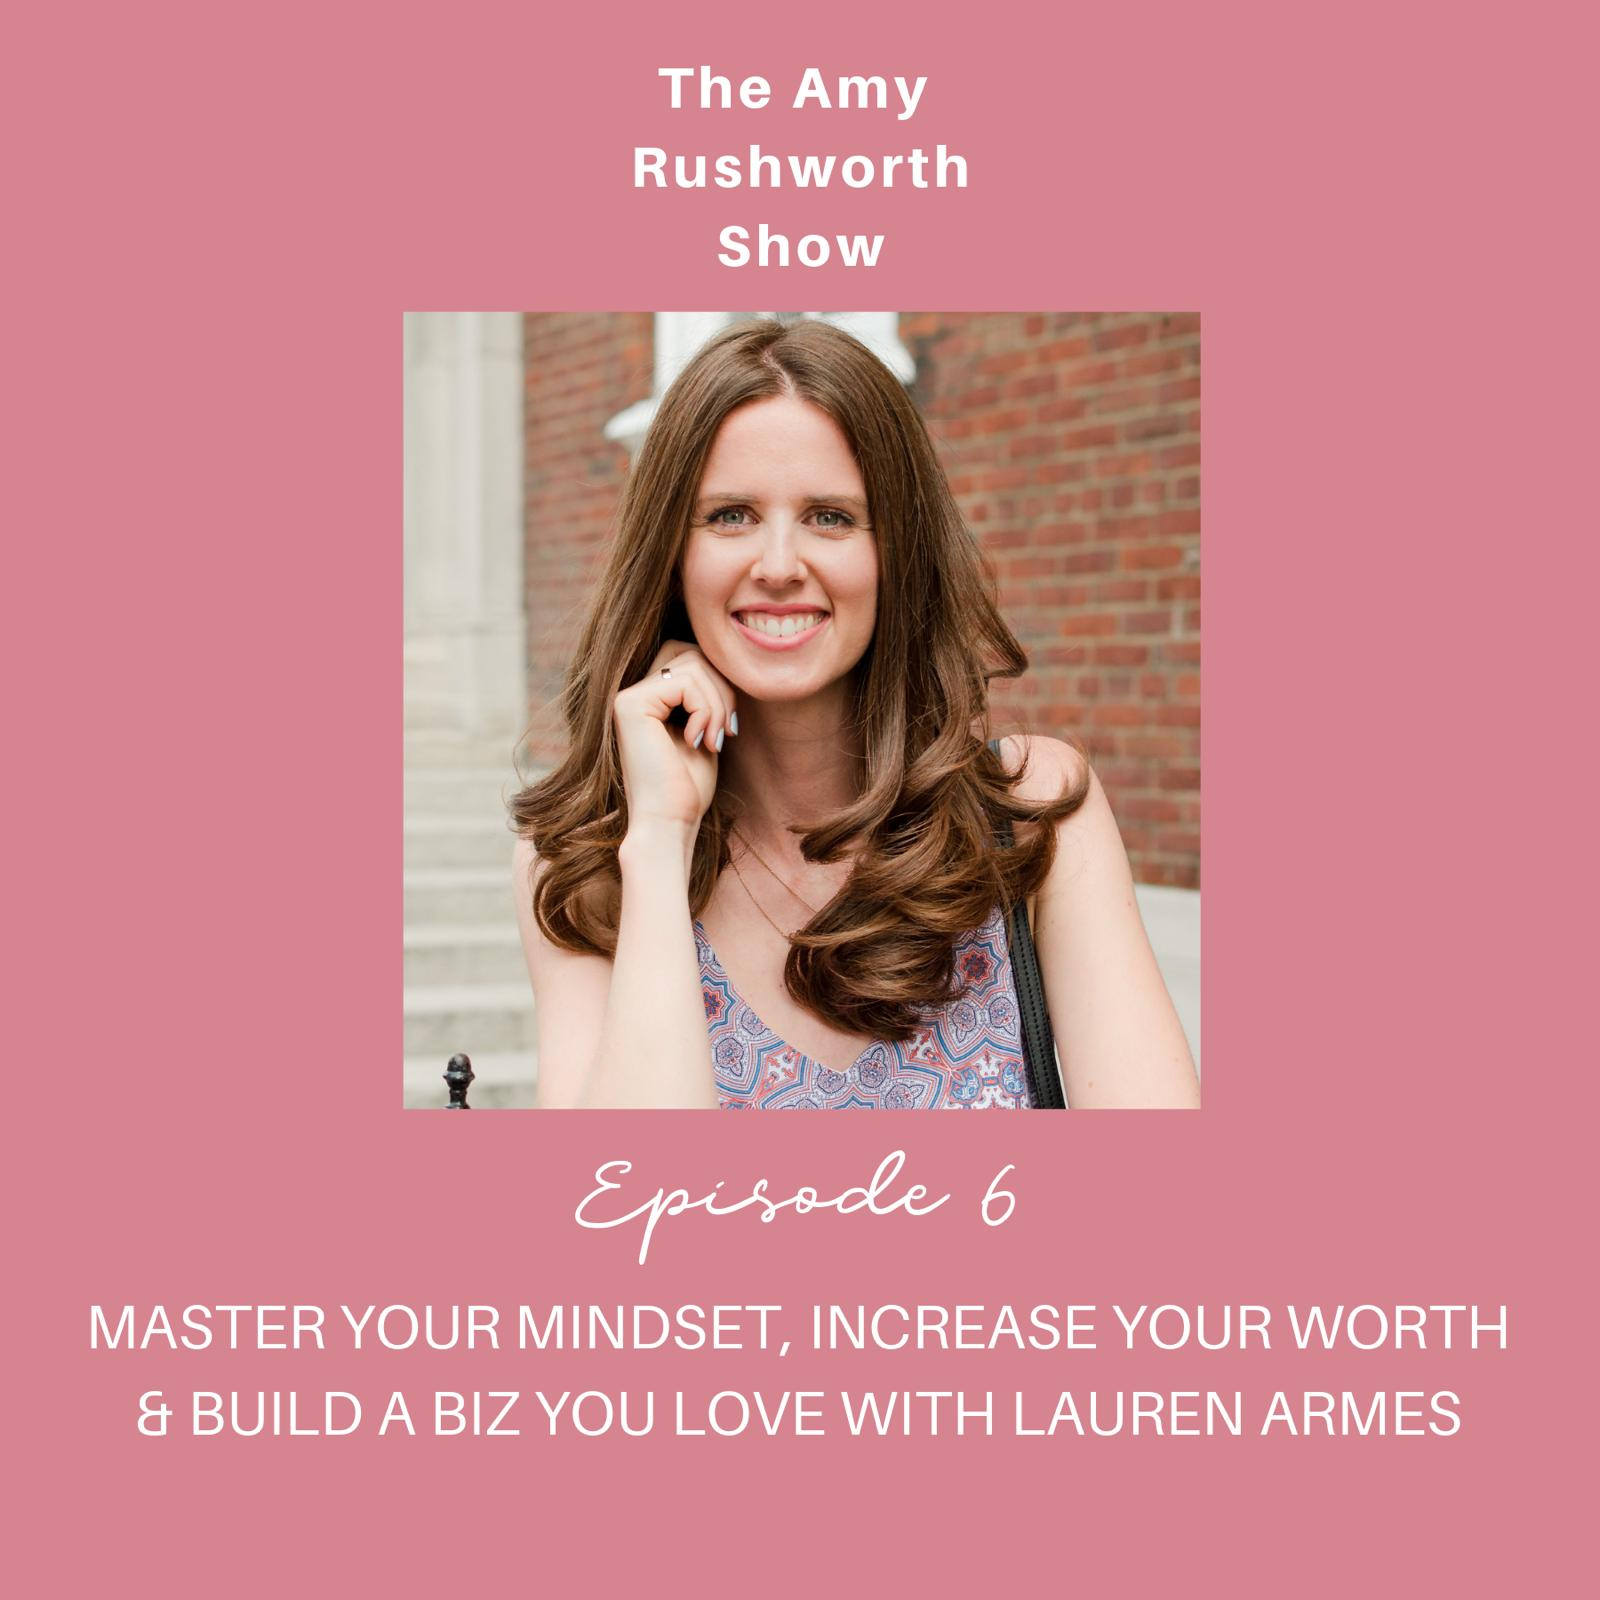 EP 6 – Amy Rushworth interviews Lauren about mastering your mindset and building a business you love.